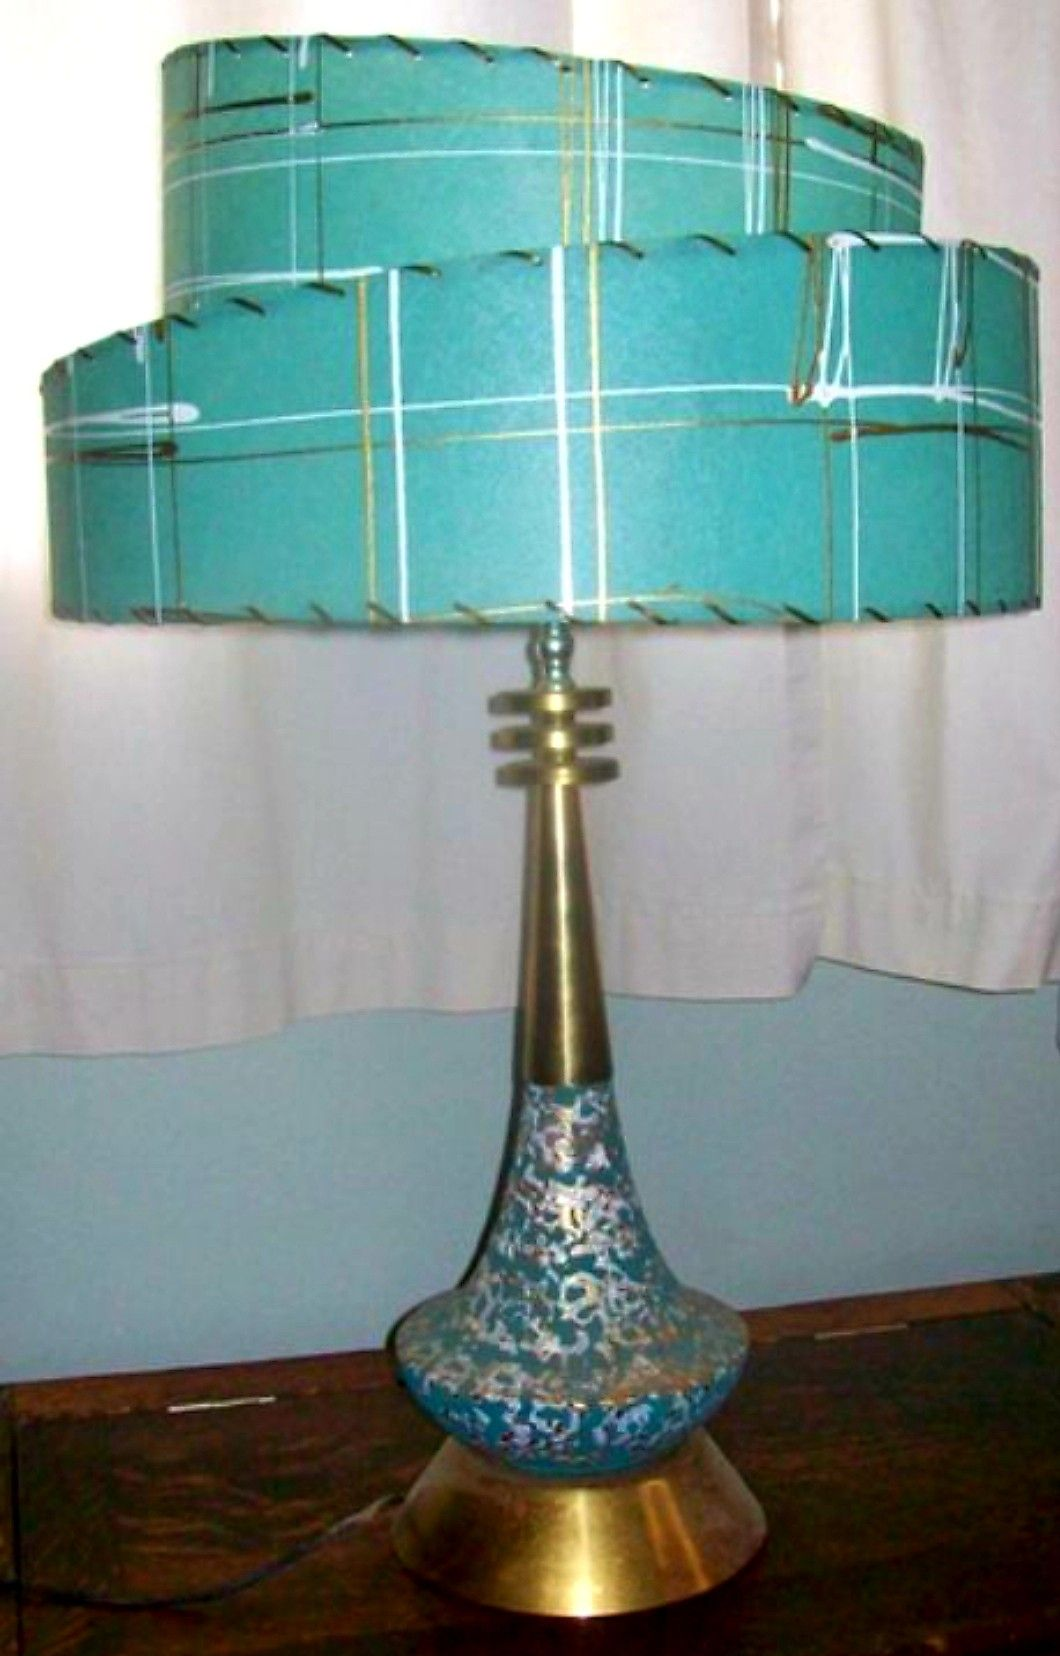 Pin By Connie Mccarty On Misc In 2020 Mid Century Modern Table Lamps Mid Century Modern Lamps Mid Century Modern Table